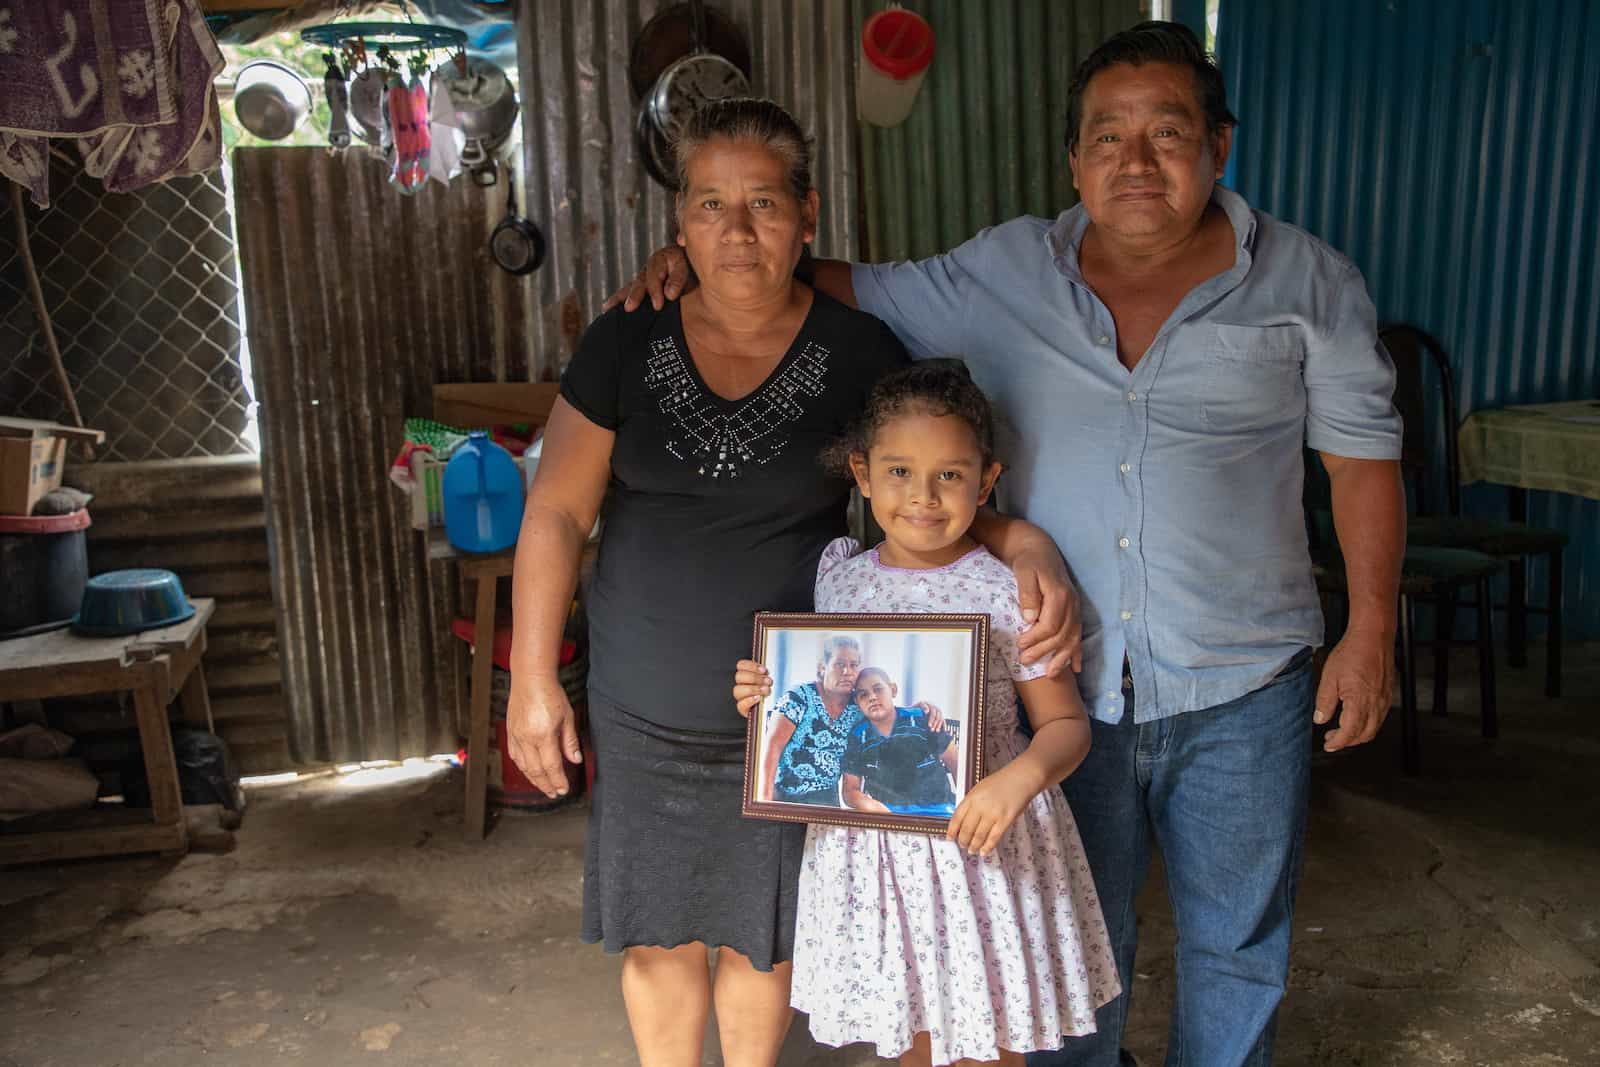 A woman and a man stand behind a little girl holding a picture of a young boy and his grandma.